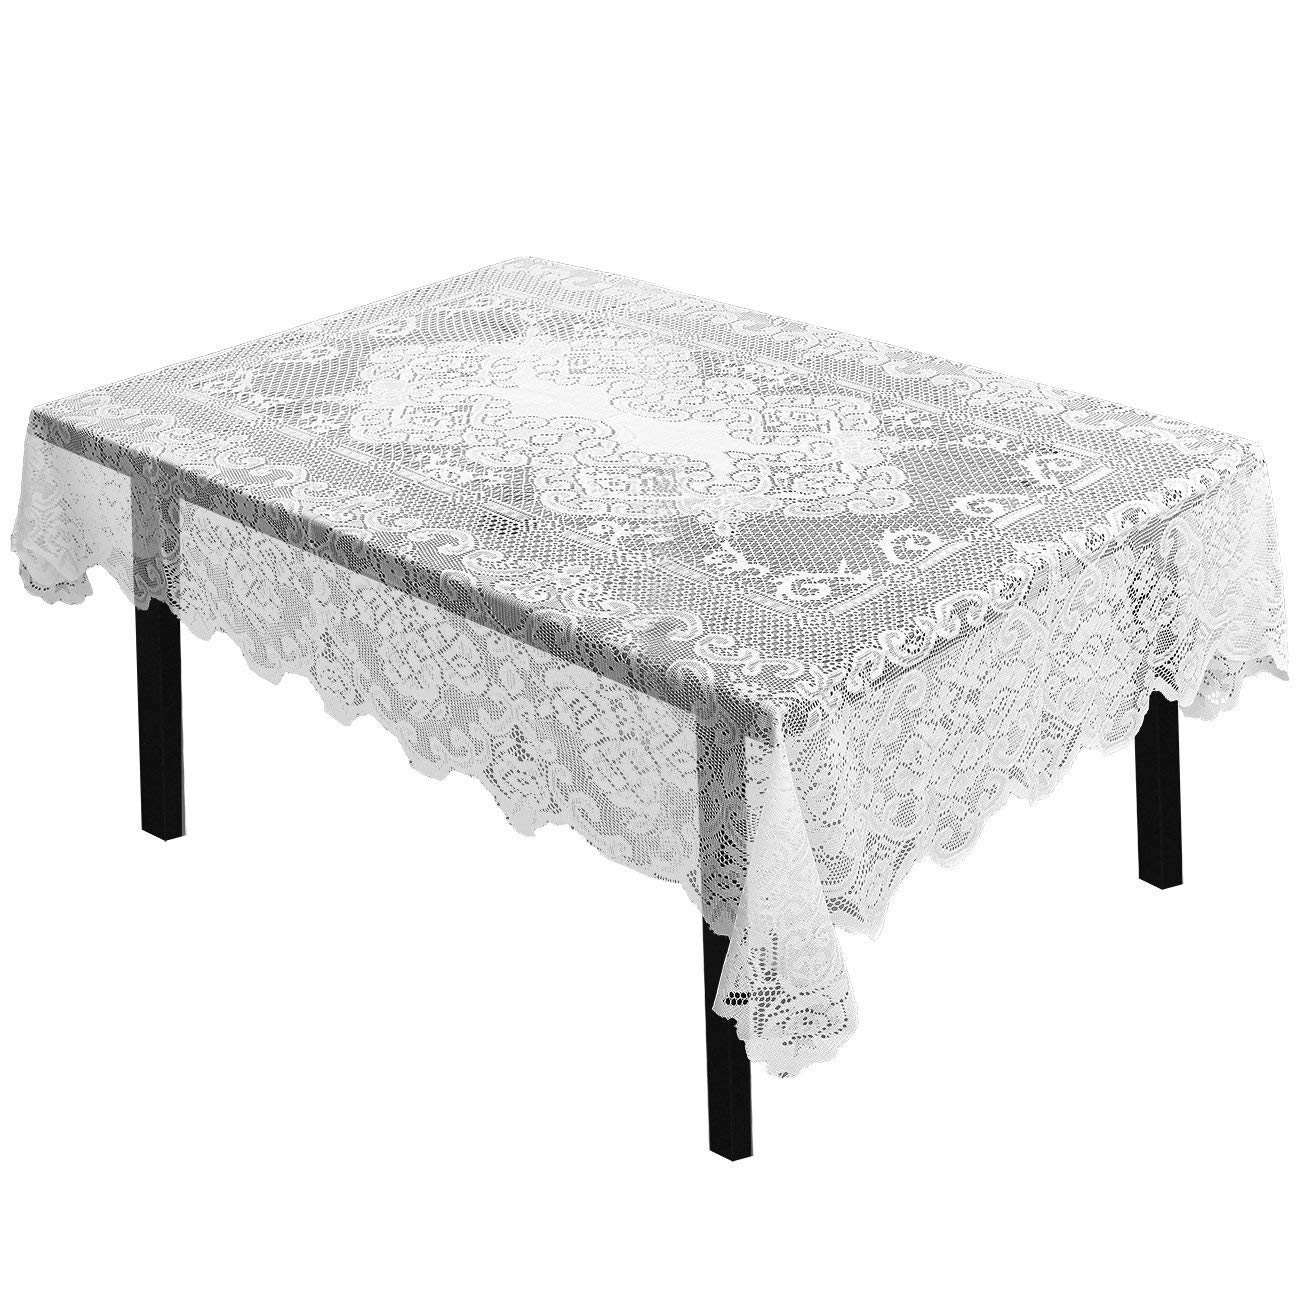 juvale lace tablecloth rectangular with for inch round accent table elegant floral patterns perfect birthday parties wedding receptions baby showers pier imports dishes west elm